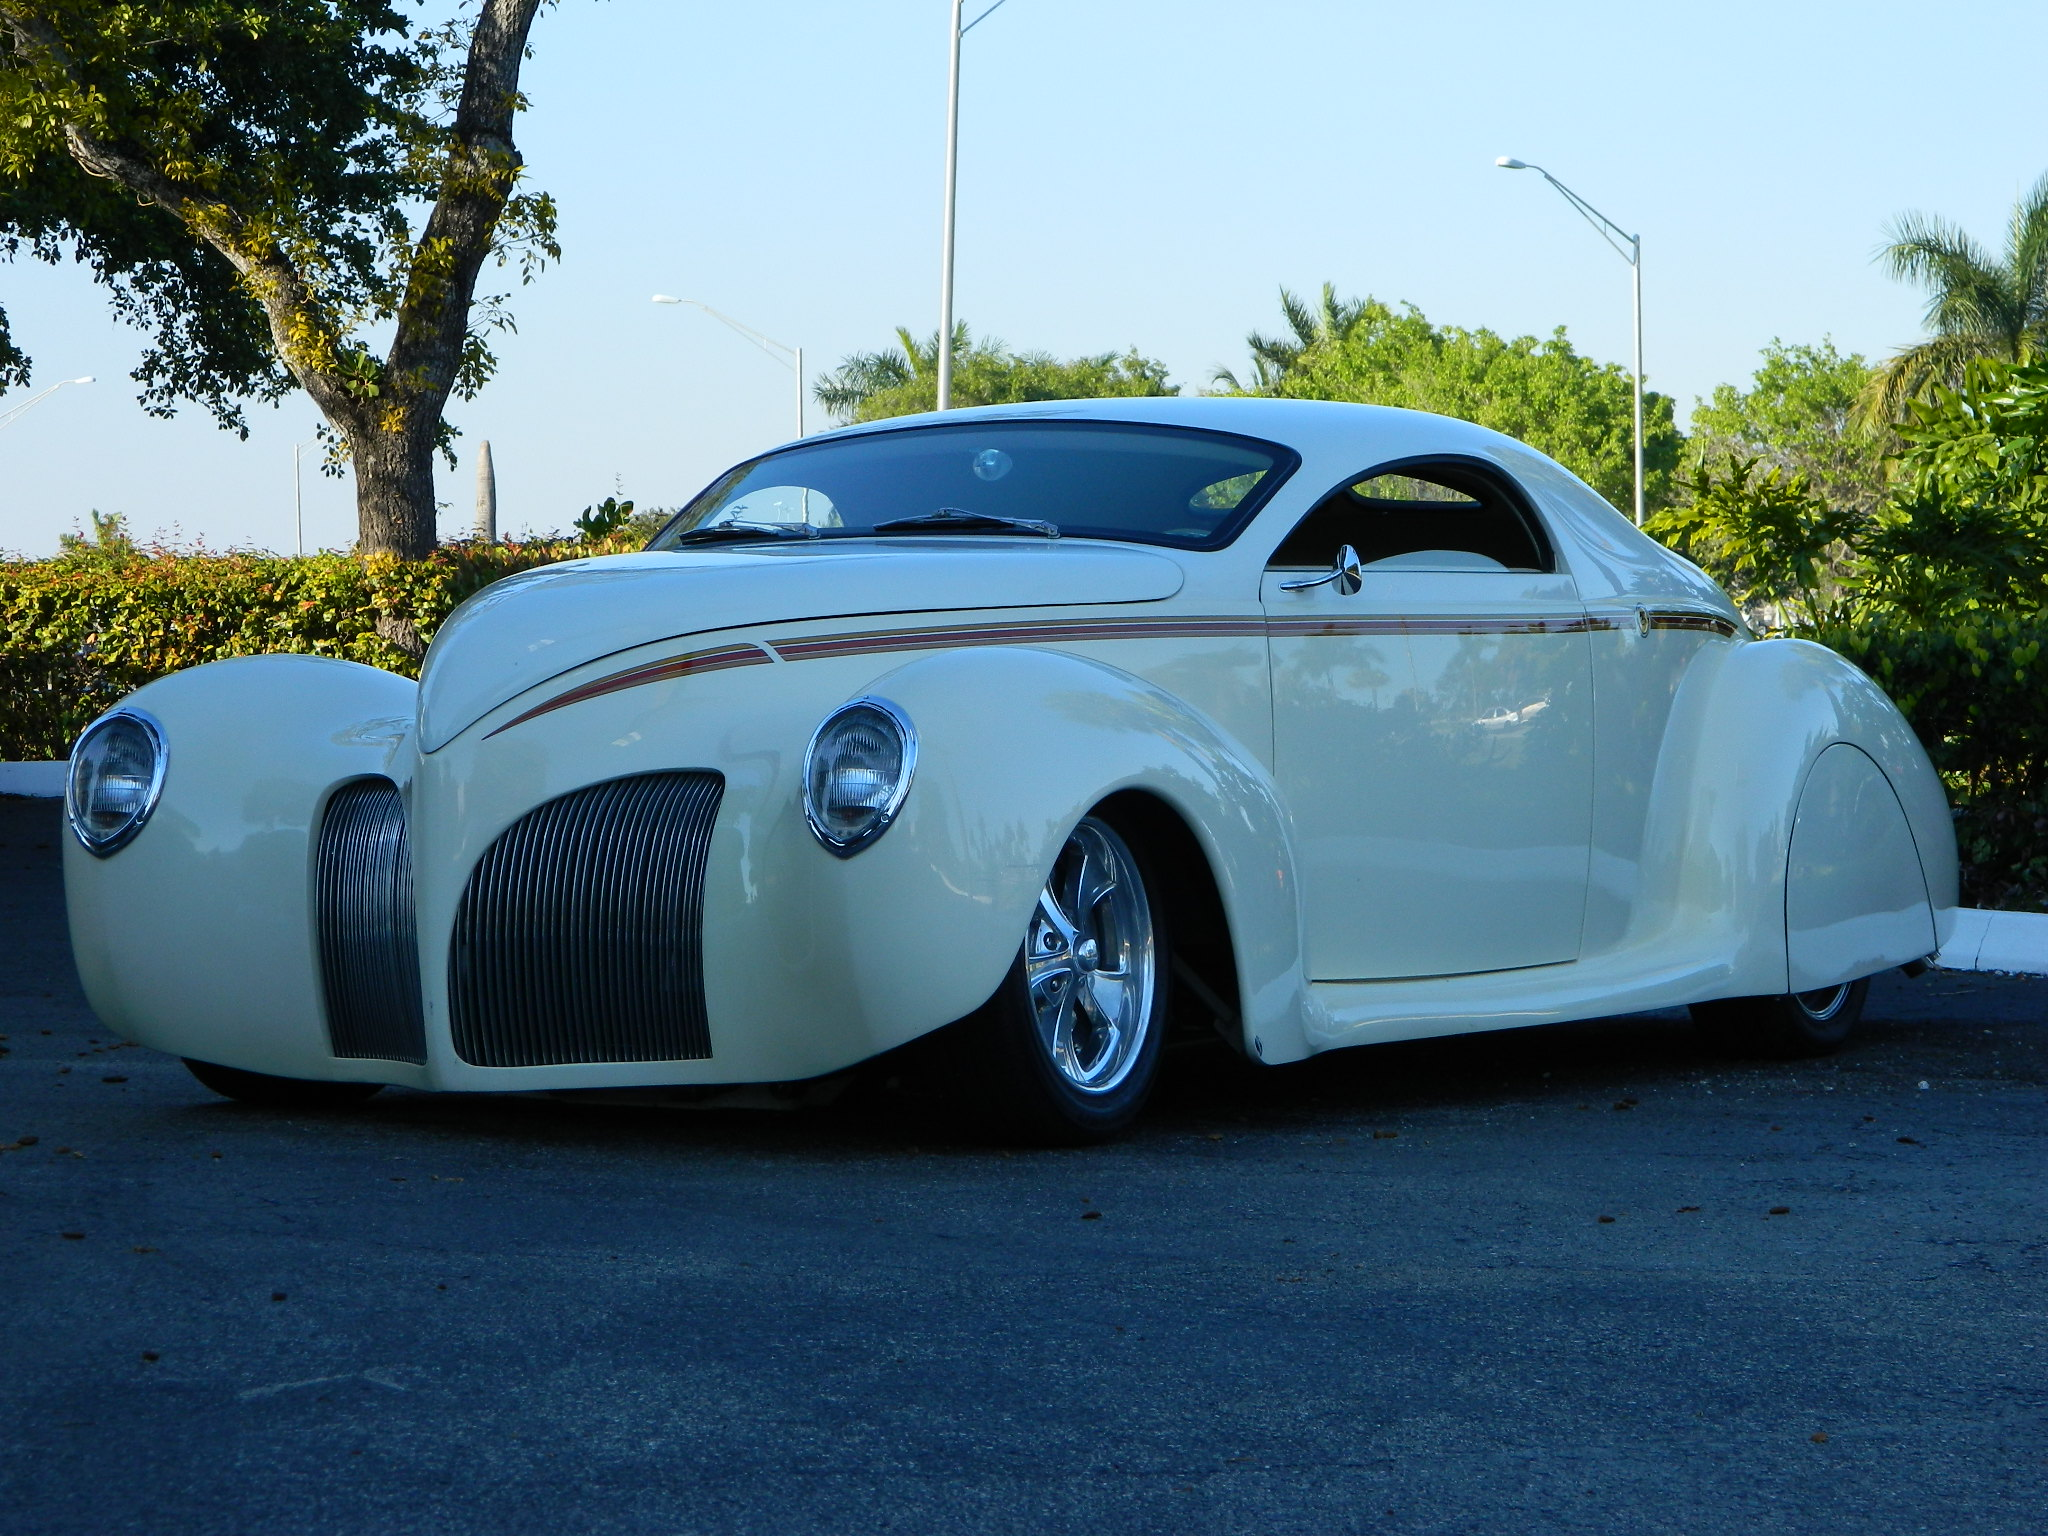 Orlando Auto Show >> 1939 Lincoln Zephyr by DecoRides - Hollywood Wheels ...